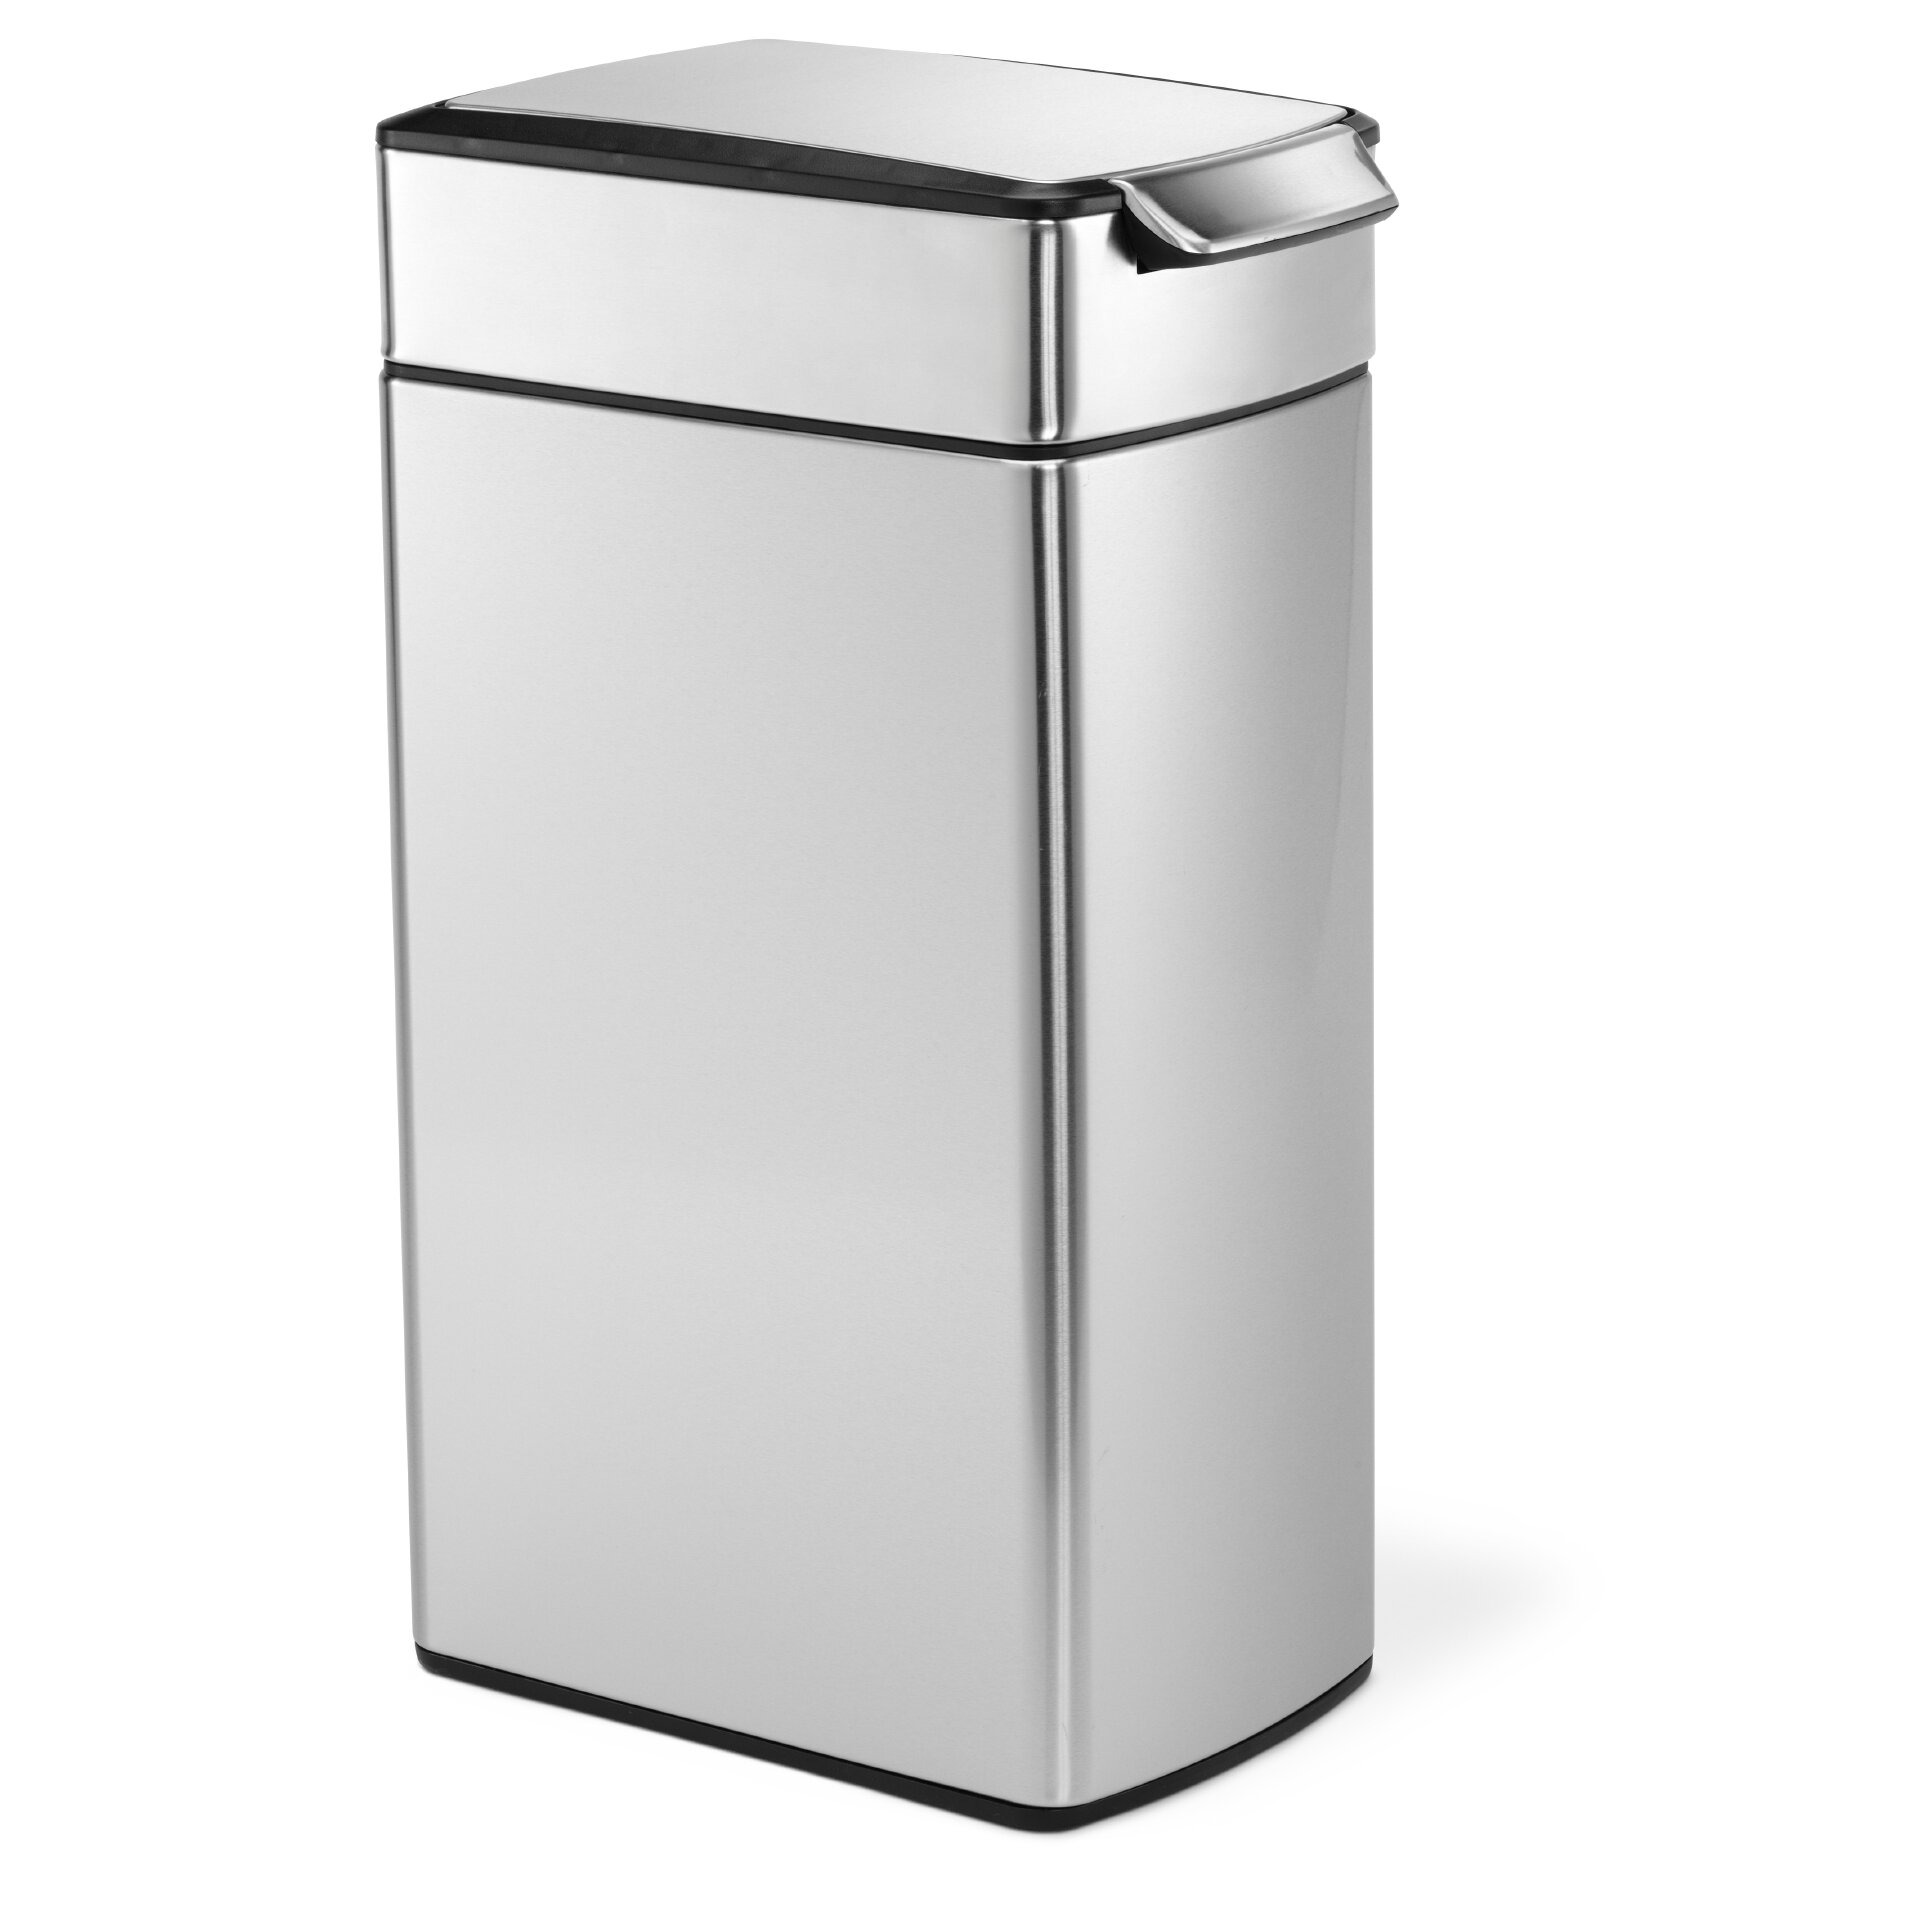 Simplehuman 10 5 Gallon Touch Top Stainless Steel Trash